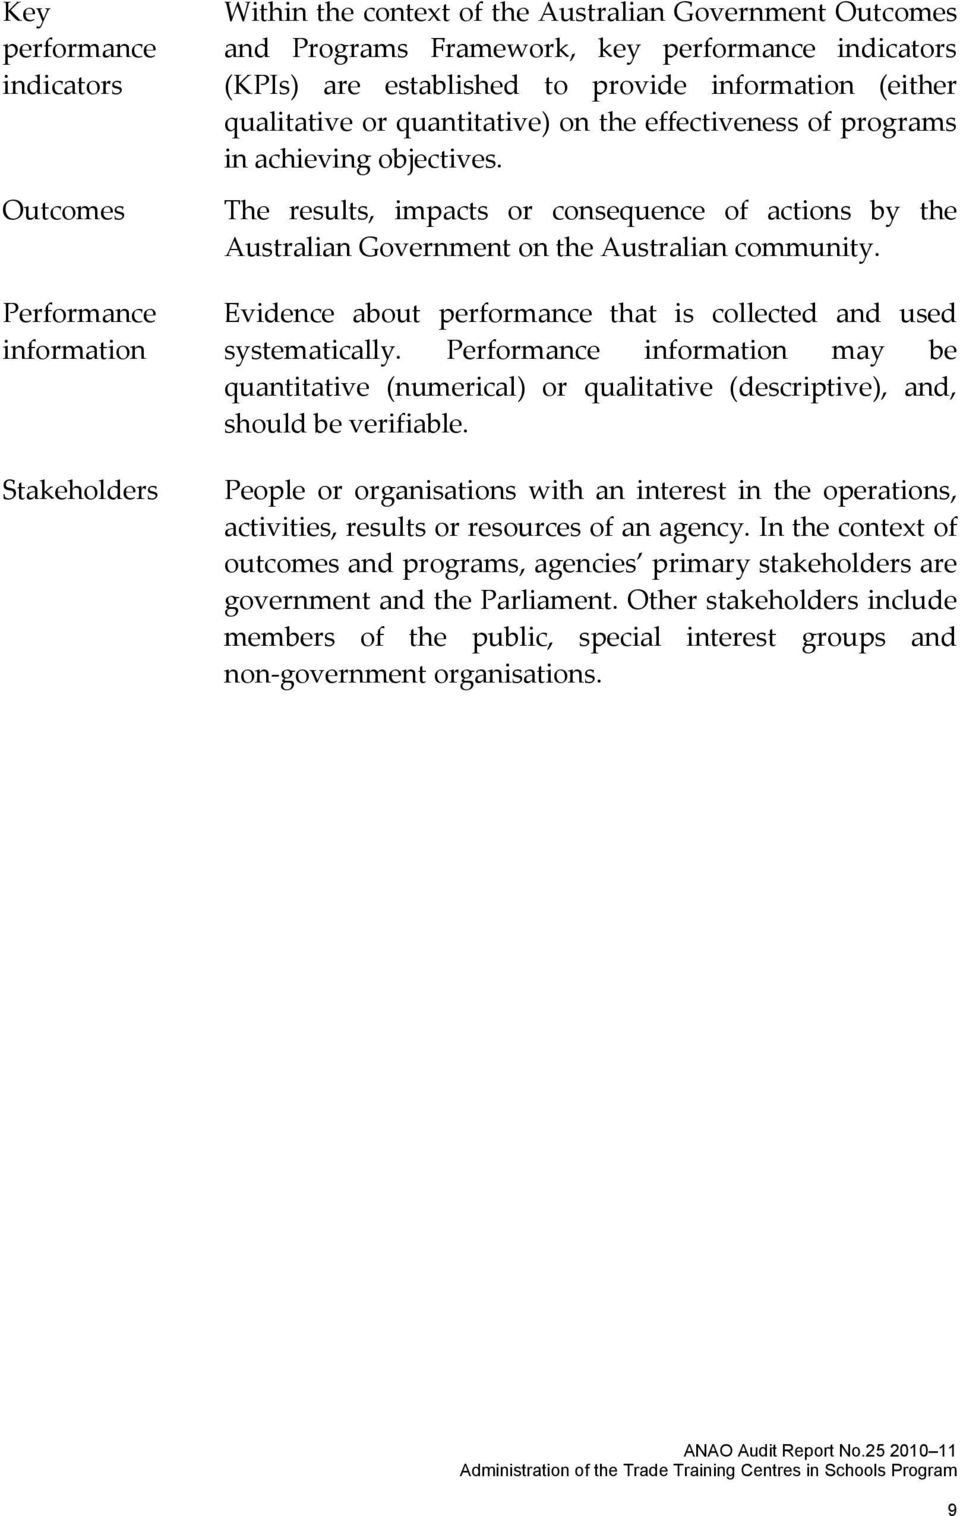 The results, impacts or consequence of actions by the Australian Government on the Australian community. Evidence about performance that is collected and used systematically.